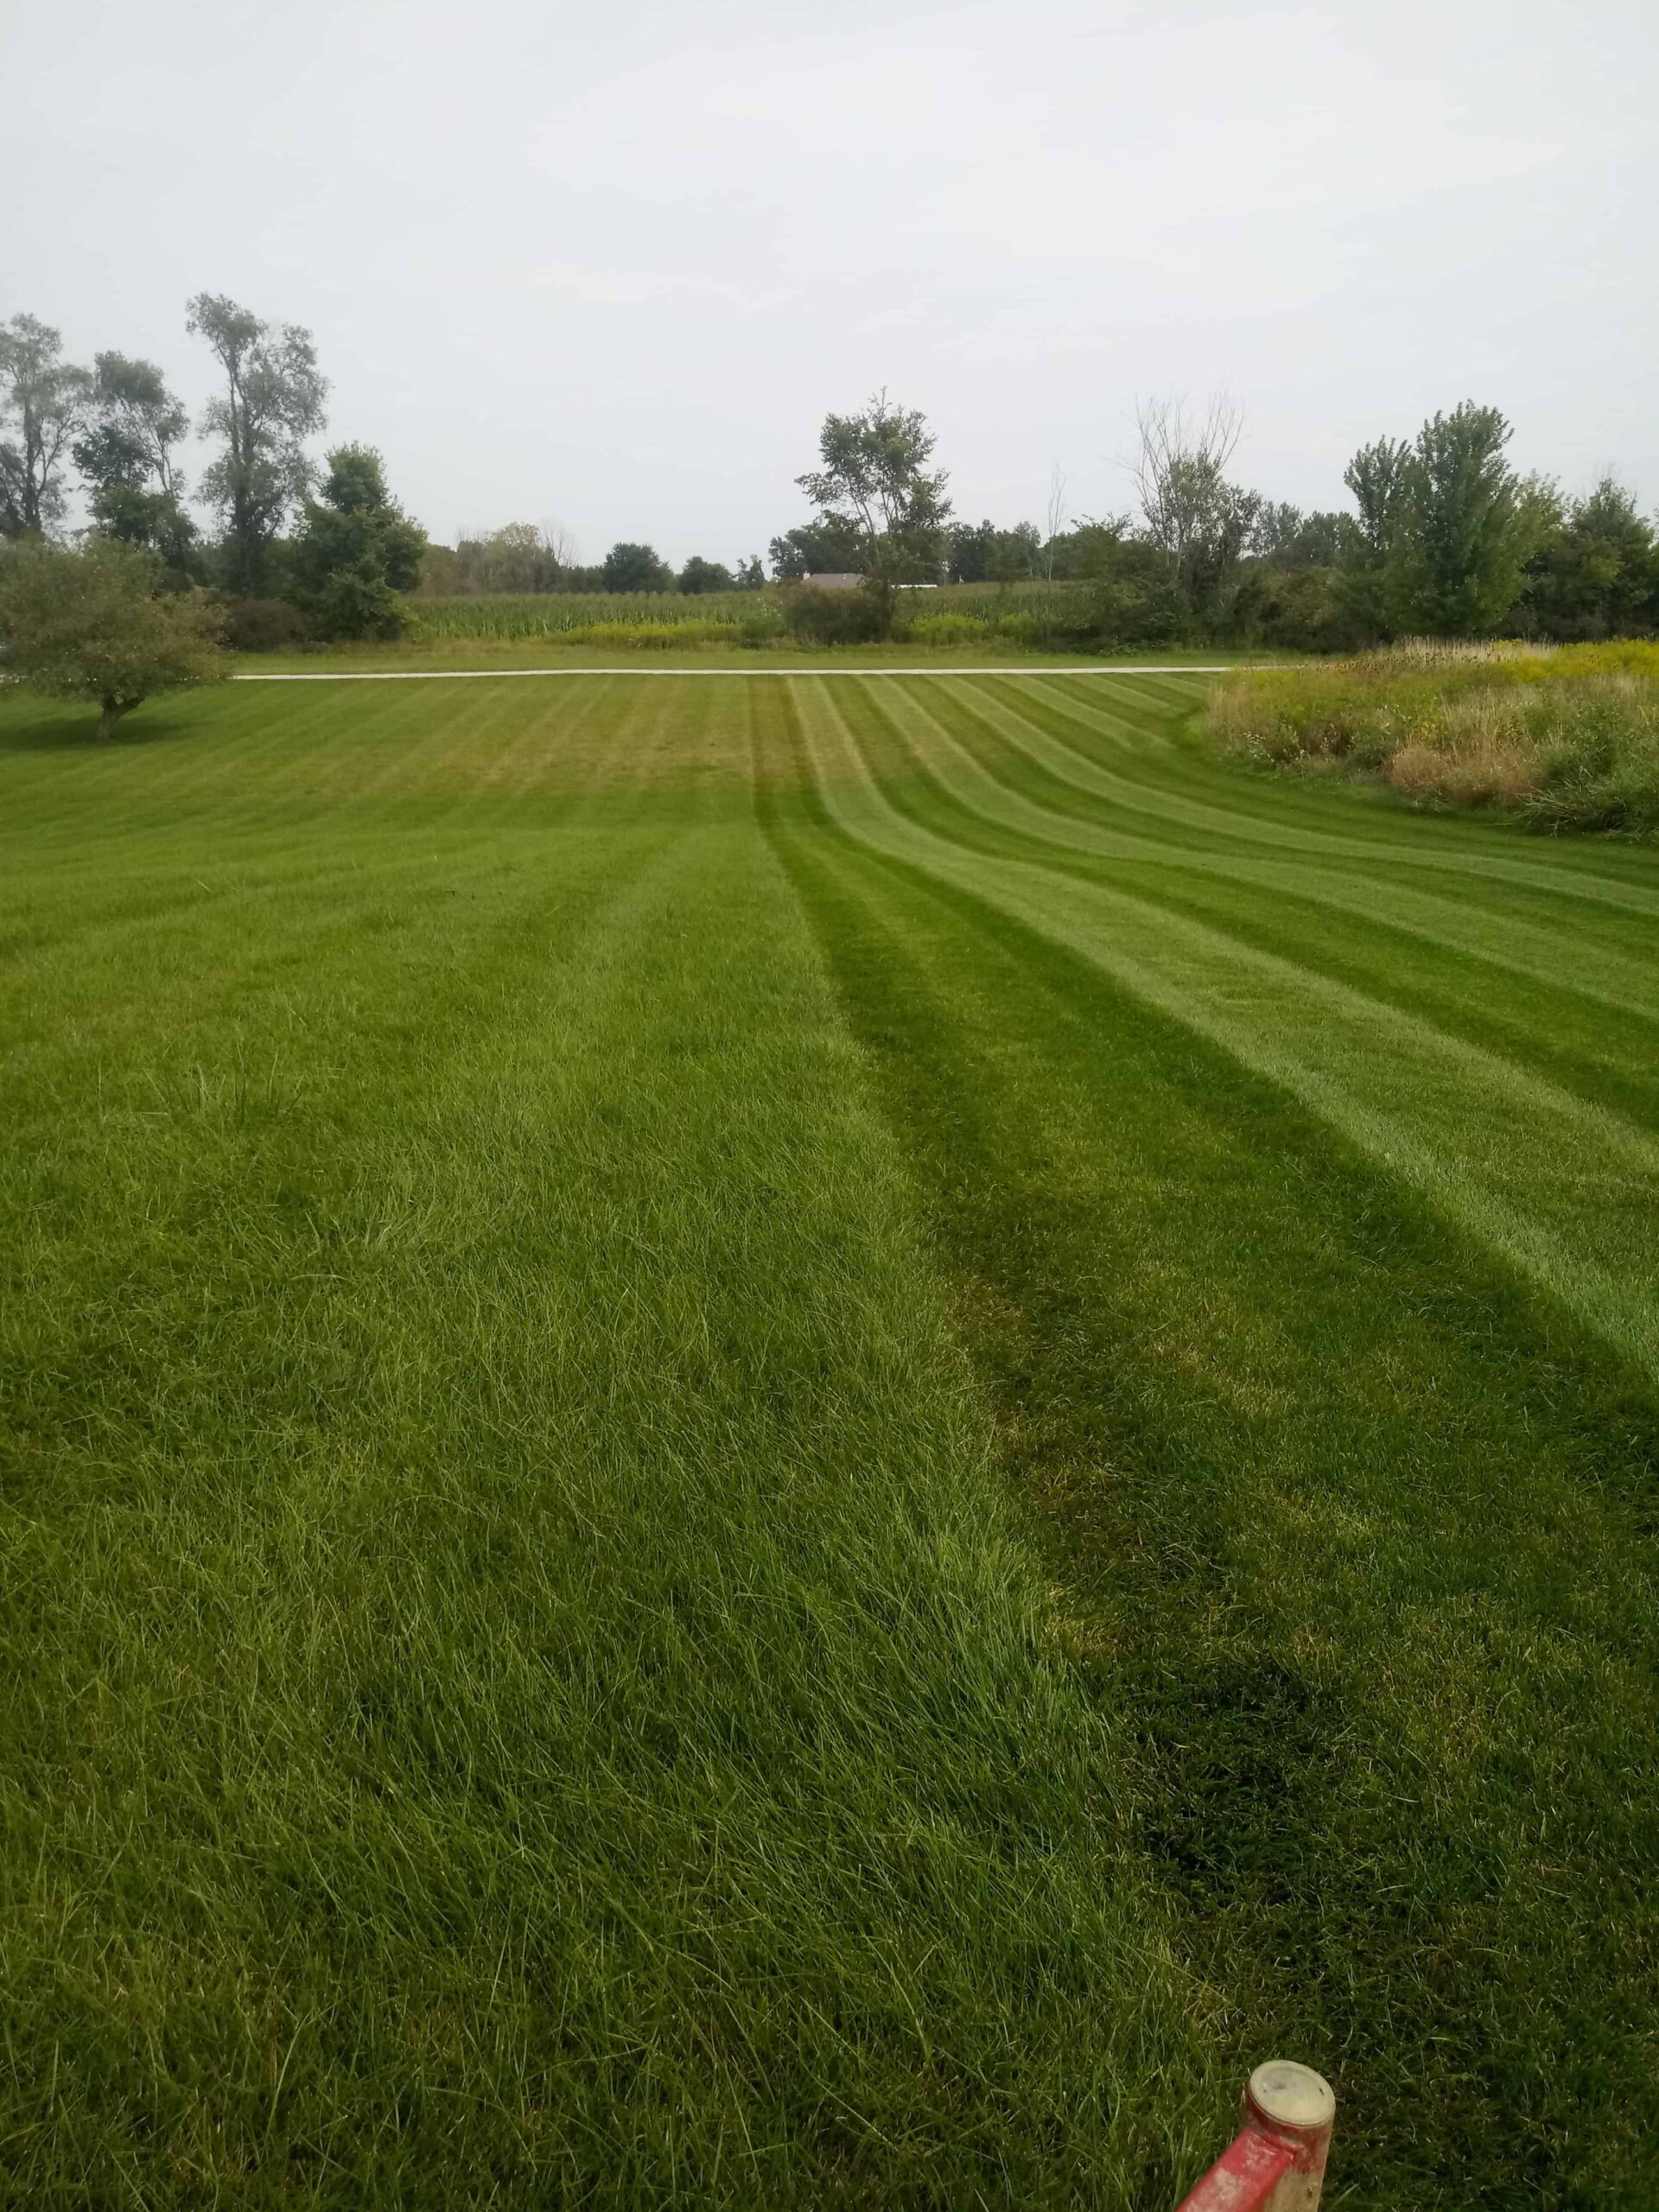 Mowing and Lawn Maintenance, Greater Fort Wayne Area